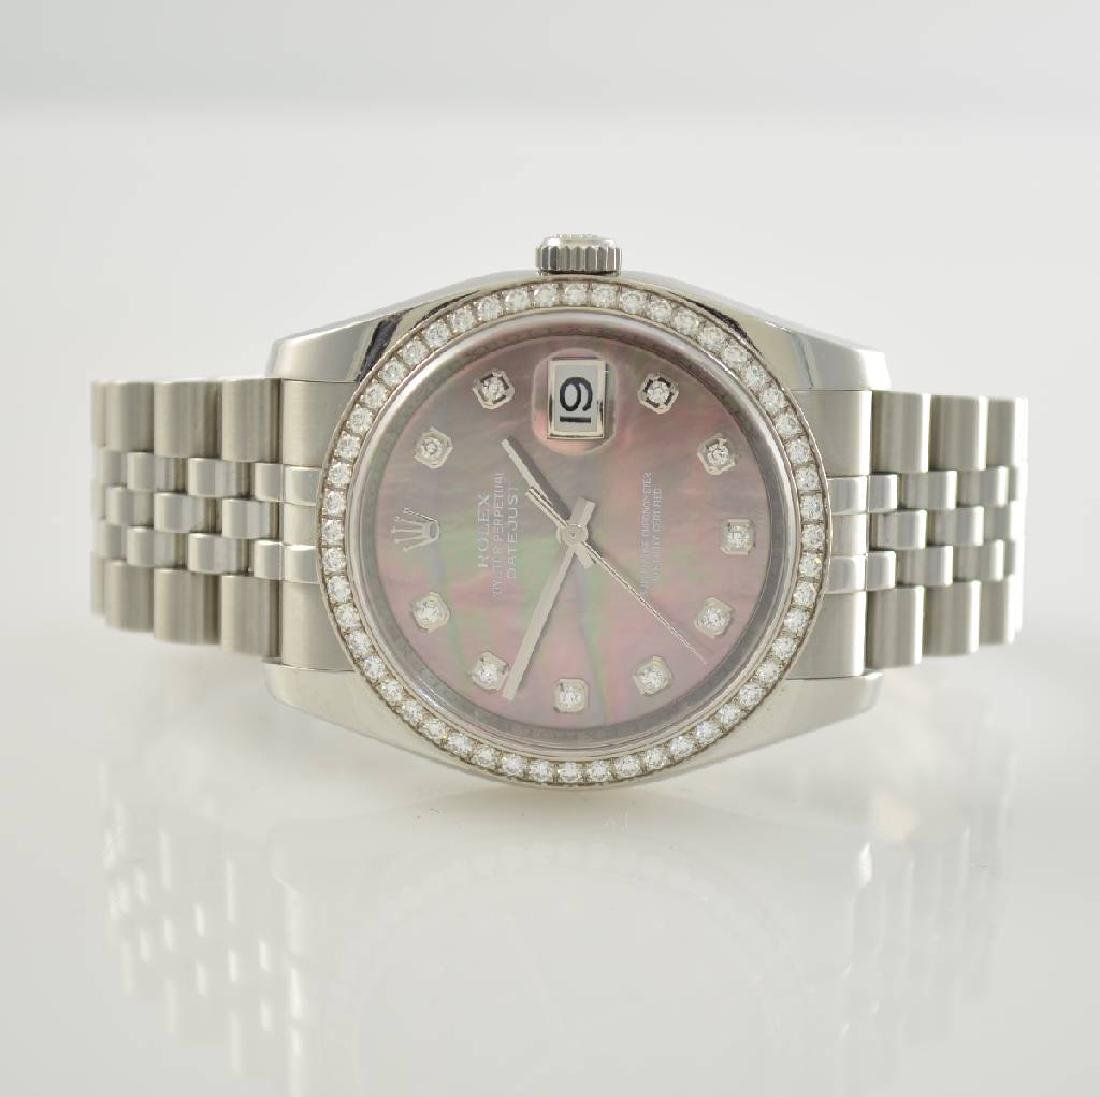 ROLEX wristwatch Oyster Perpetual Datejust